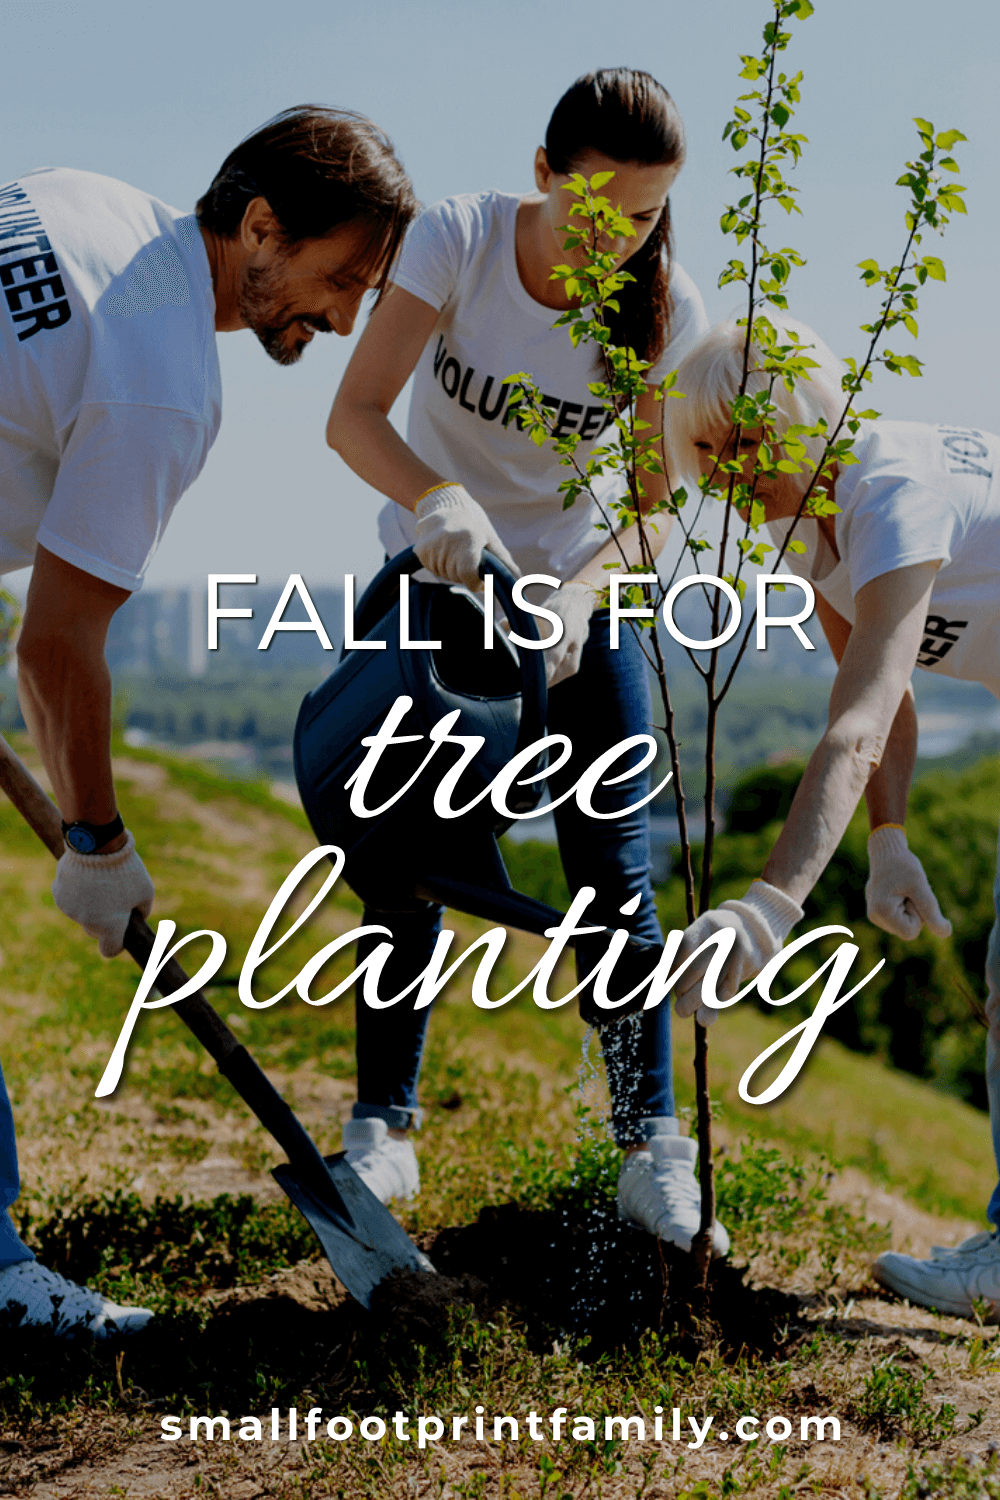 As mundane as it may seem, the reason we should plant more trees is because it is one of the most powerful ways to make a difference for the environment. And trees increase property value and reduce heating and cooling costs, too!